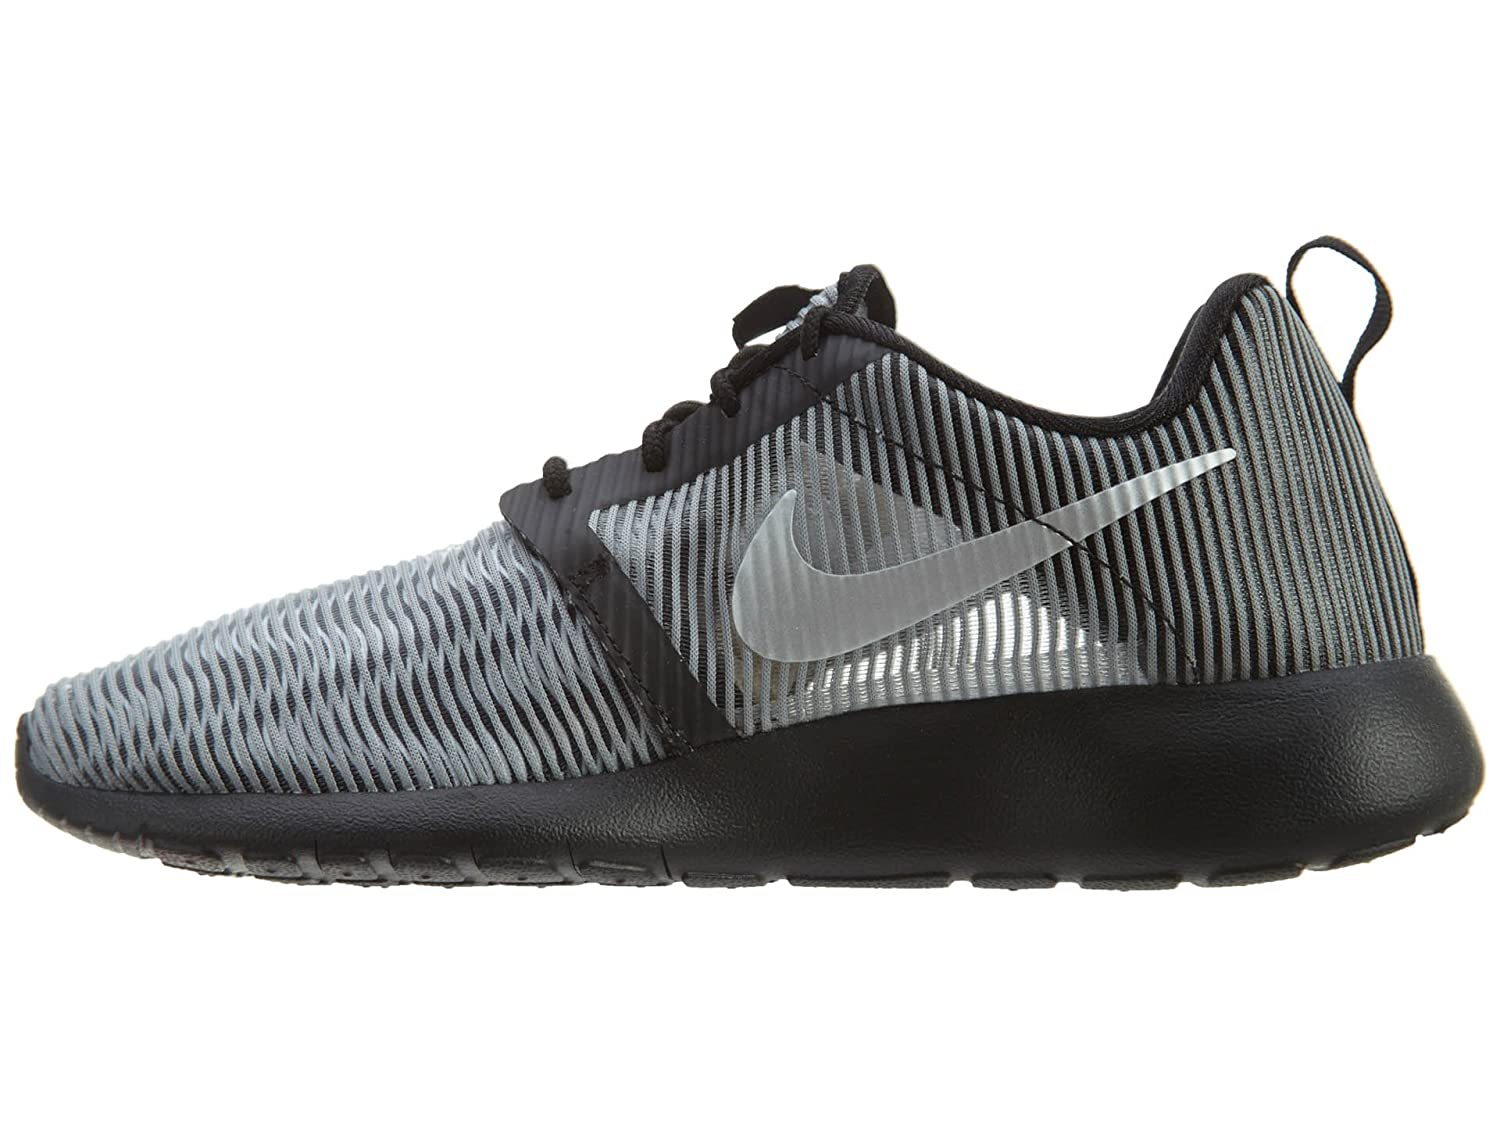 NIKE Roshe One Flight Weight (GS) Youth Sneaker B01HVOPLOW 6.5 Y|Matte Silver/Metallic Silver-black-white